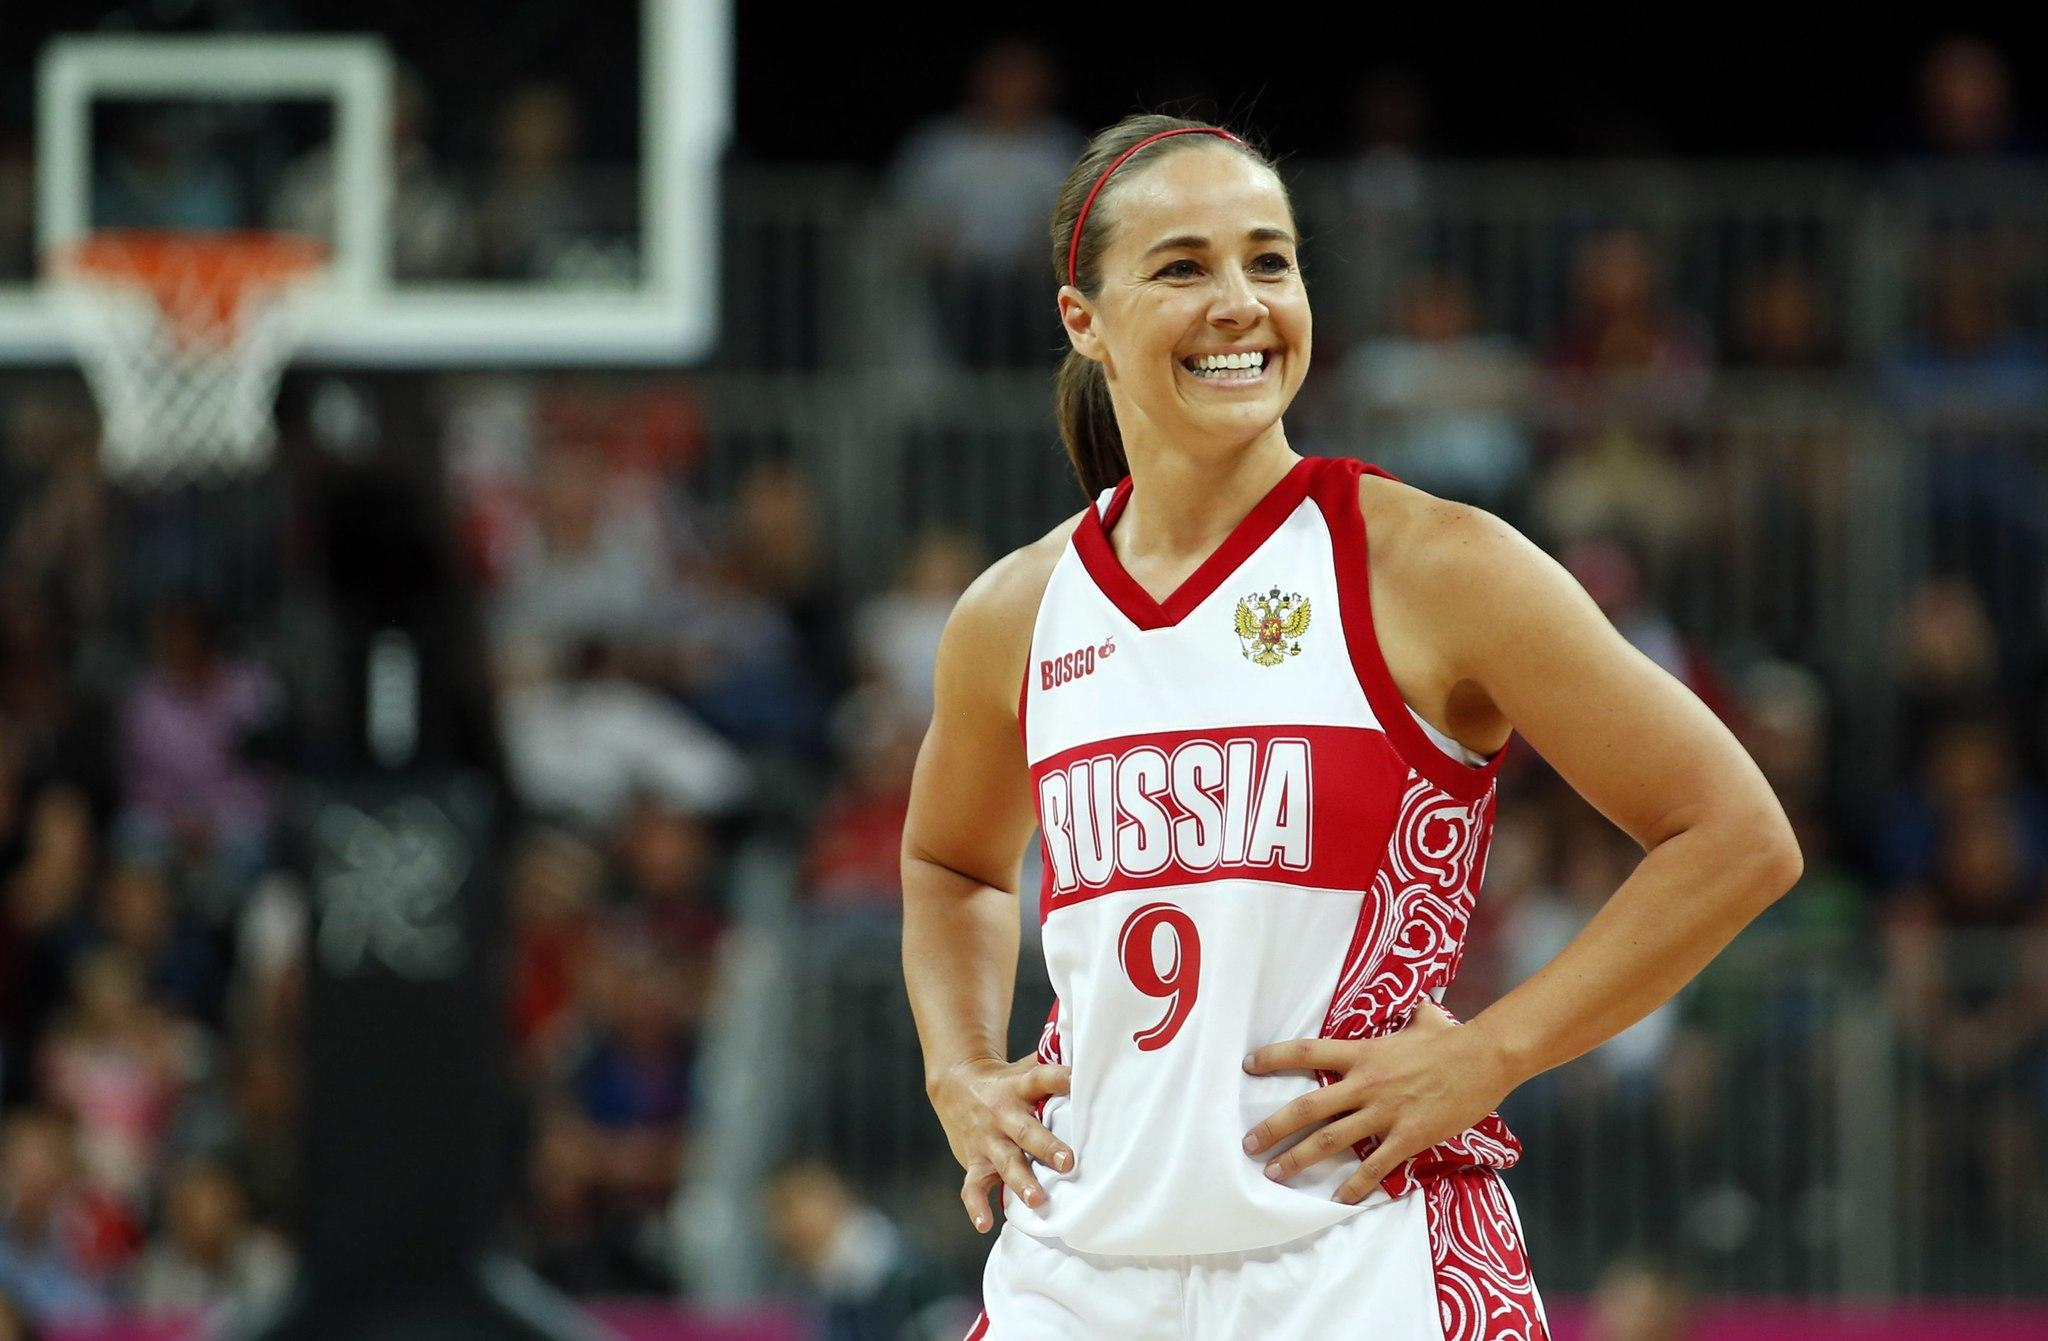 Russia's Becky Hammon smiles toward her bench during the women's preliminary round Group B basketball match against Brazil at the Basketball Arena during the London 2012 Olympic Games in this file photo taken July 30, 2012. A glass ceiling in major professional sports was cracked on August 5, 2014 when the National Basketball Association champion San Antonio Spurs named long time WNBA star Becky Hammon as the first full-time female assistant coach in NBA history.